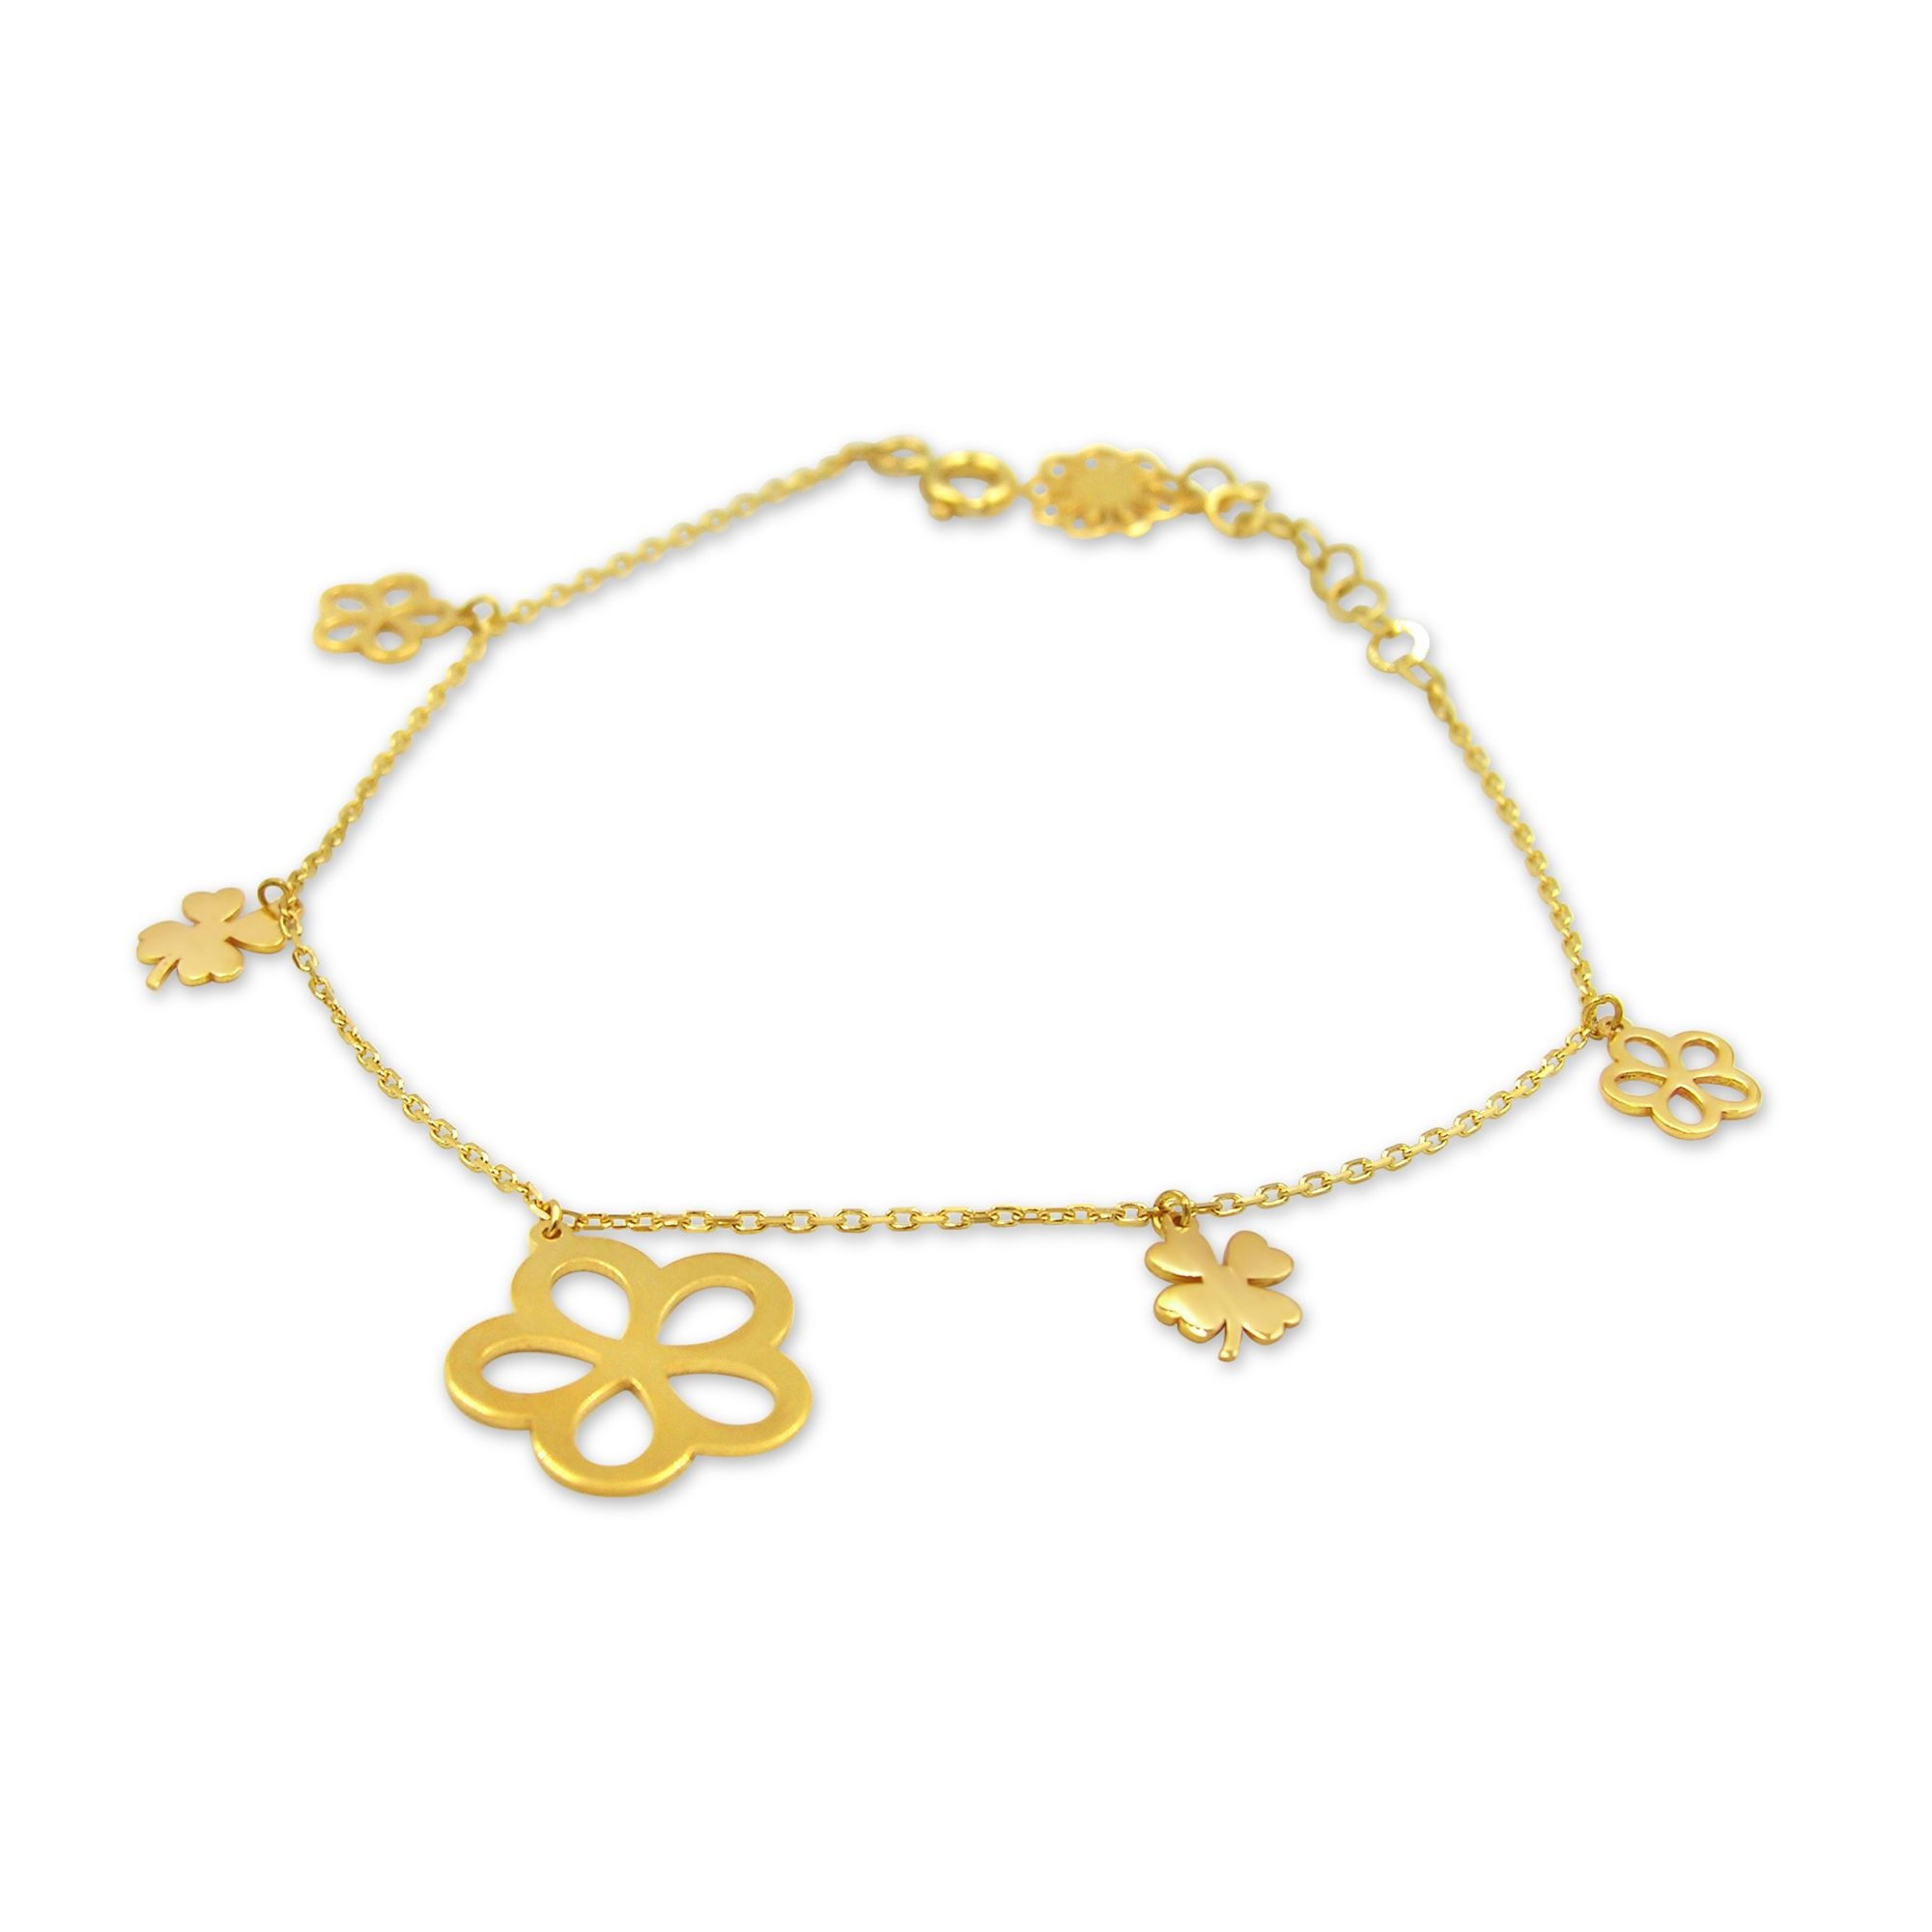 18 kt yellow gold charm bracelet with 3 color gold